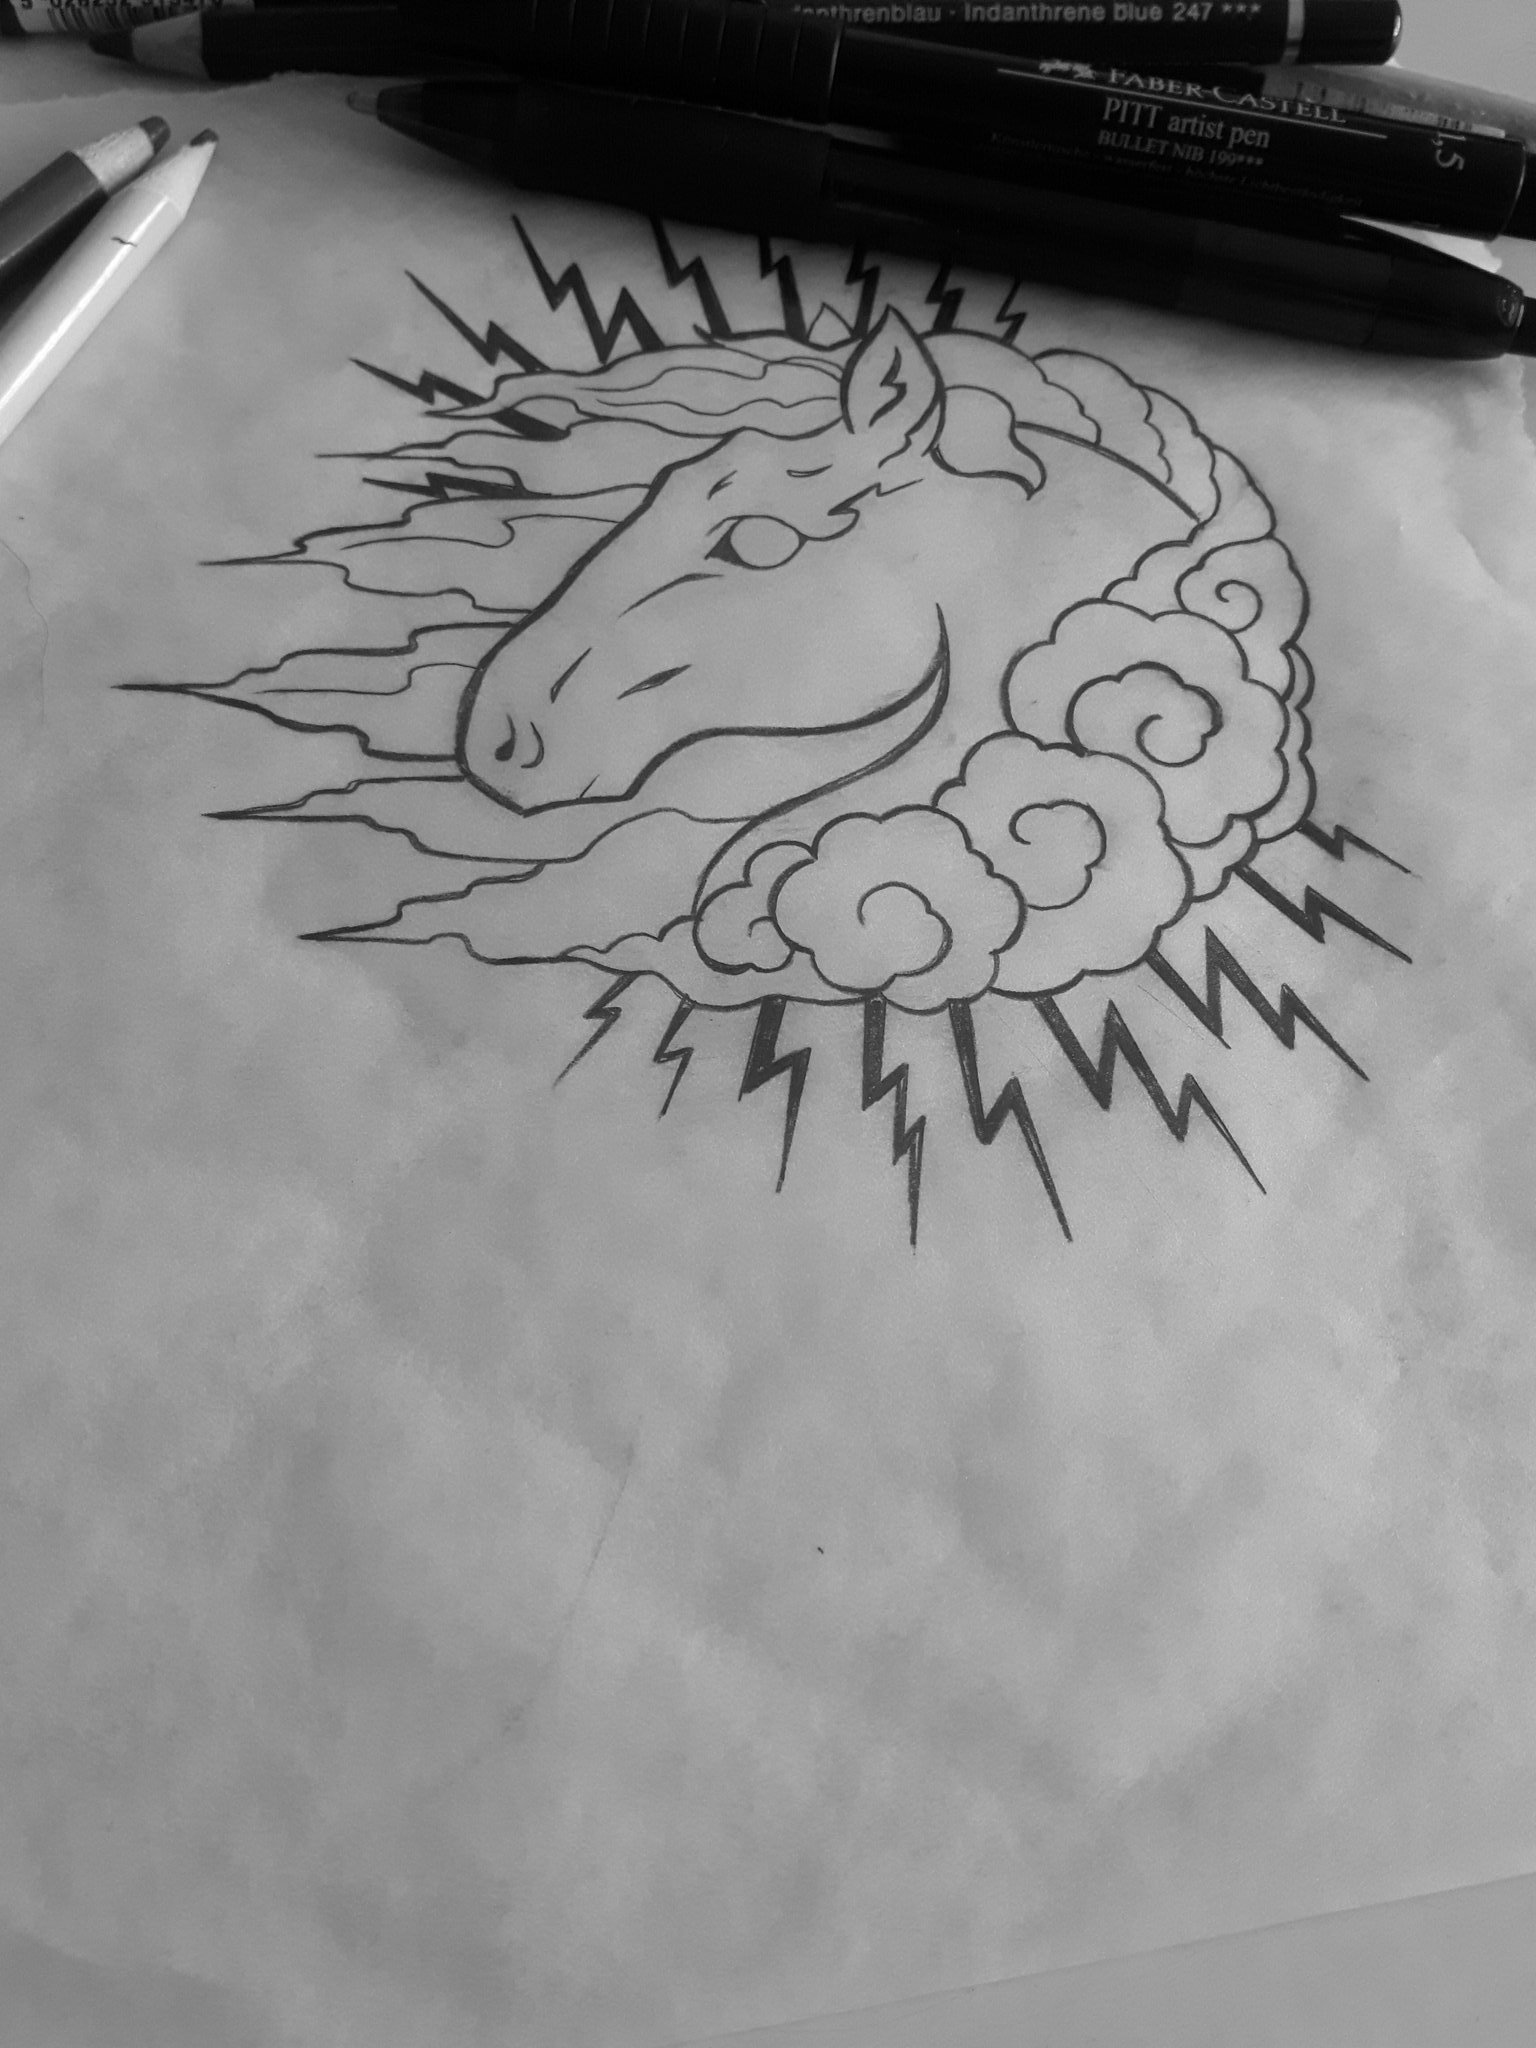 Storm Horse Tattoo A Twitter Live Drawing Happening Today At 12 30 On Our Instagram Stormhorsetattoo This Is Just A Chill Short Session Where J Stormhorseink Draws And Answers Questions If Ya Got Them